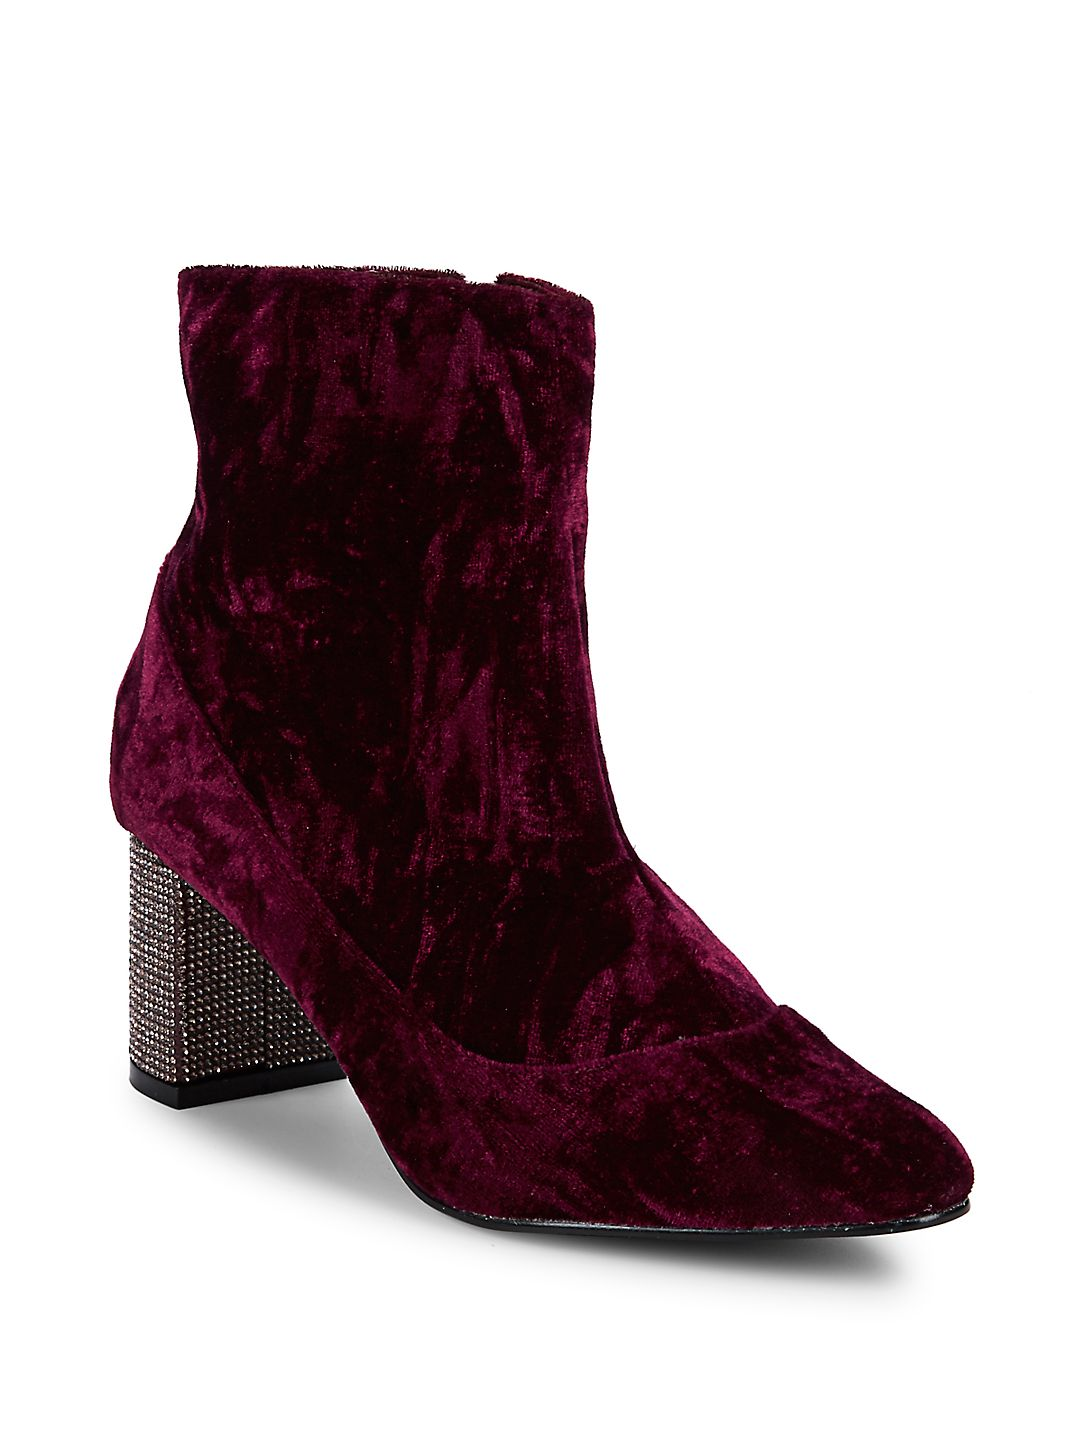 Ozanna Embellished Velour Boots